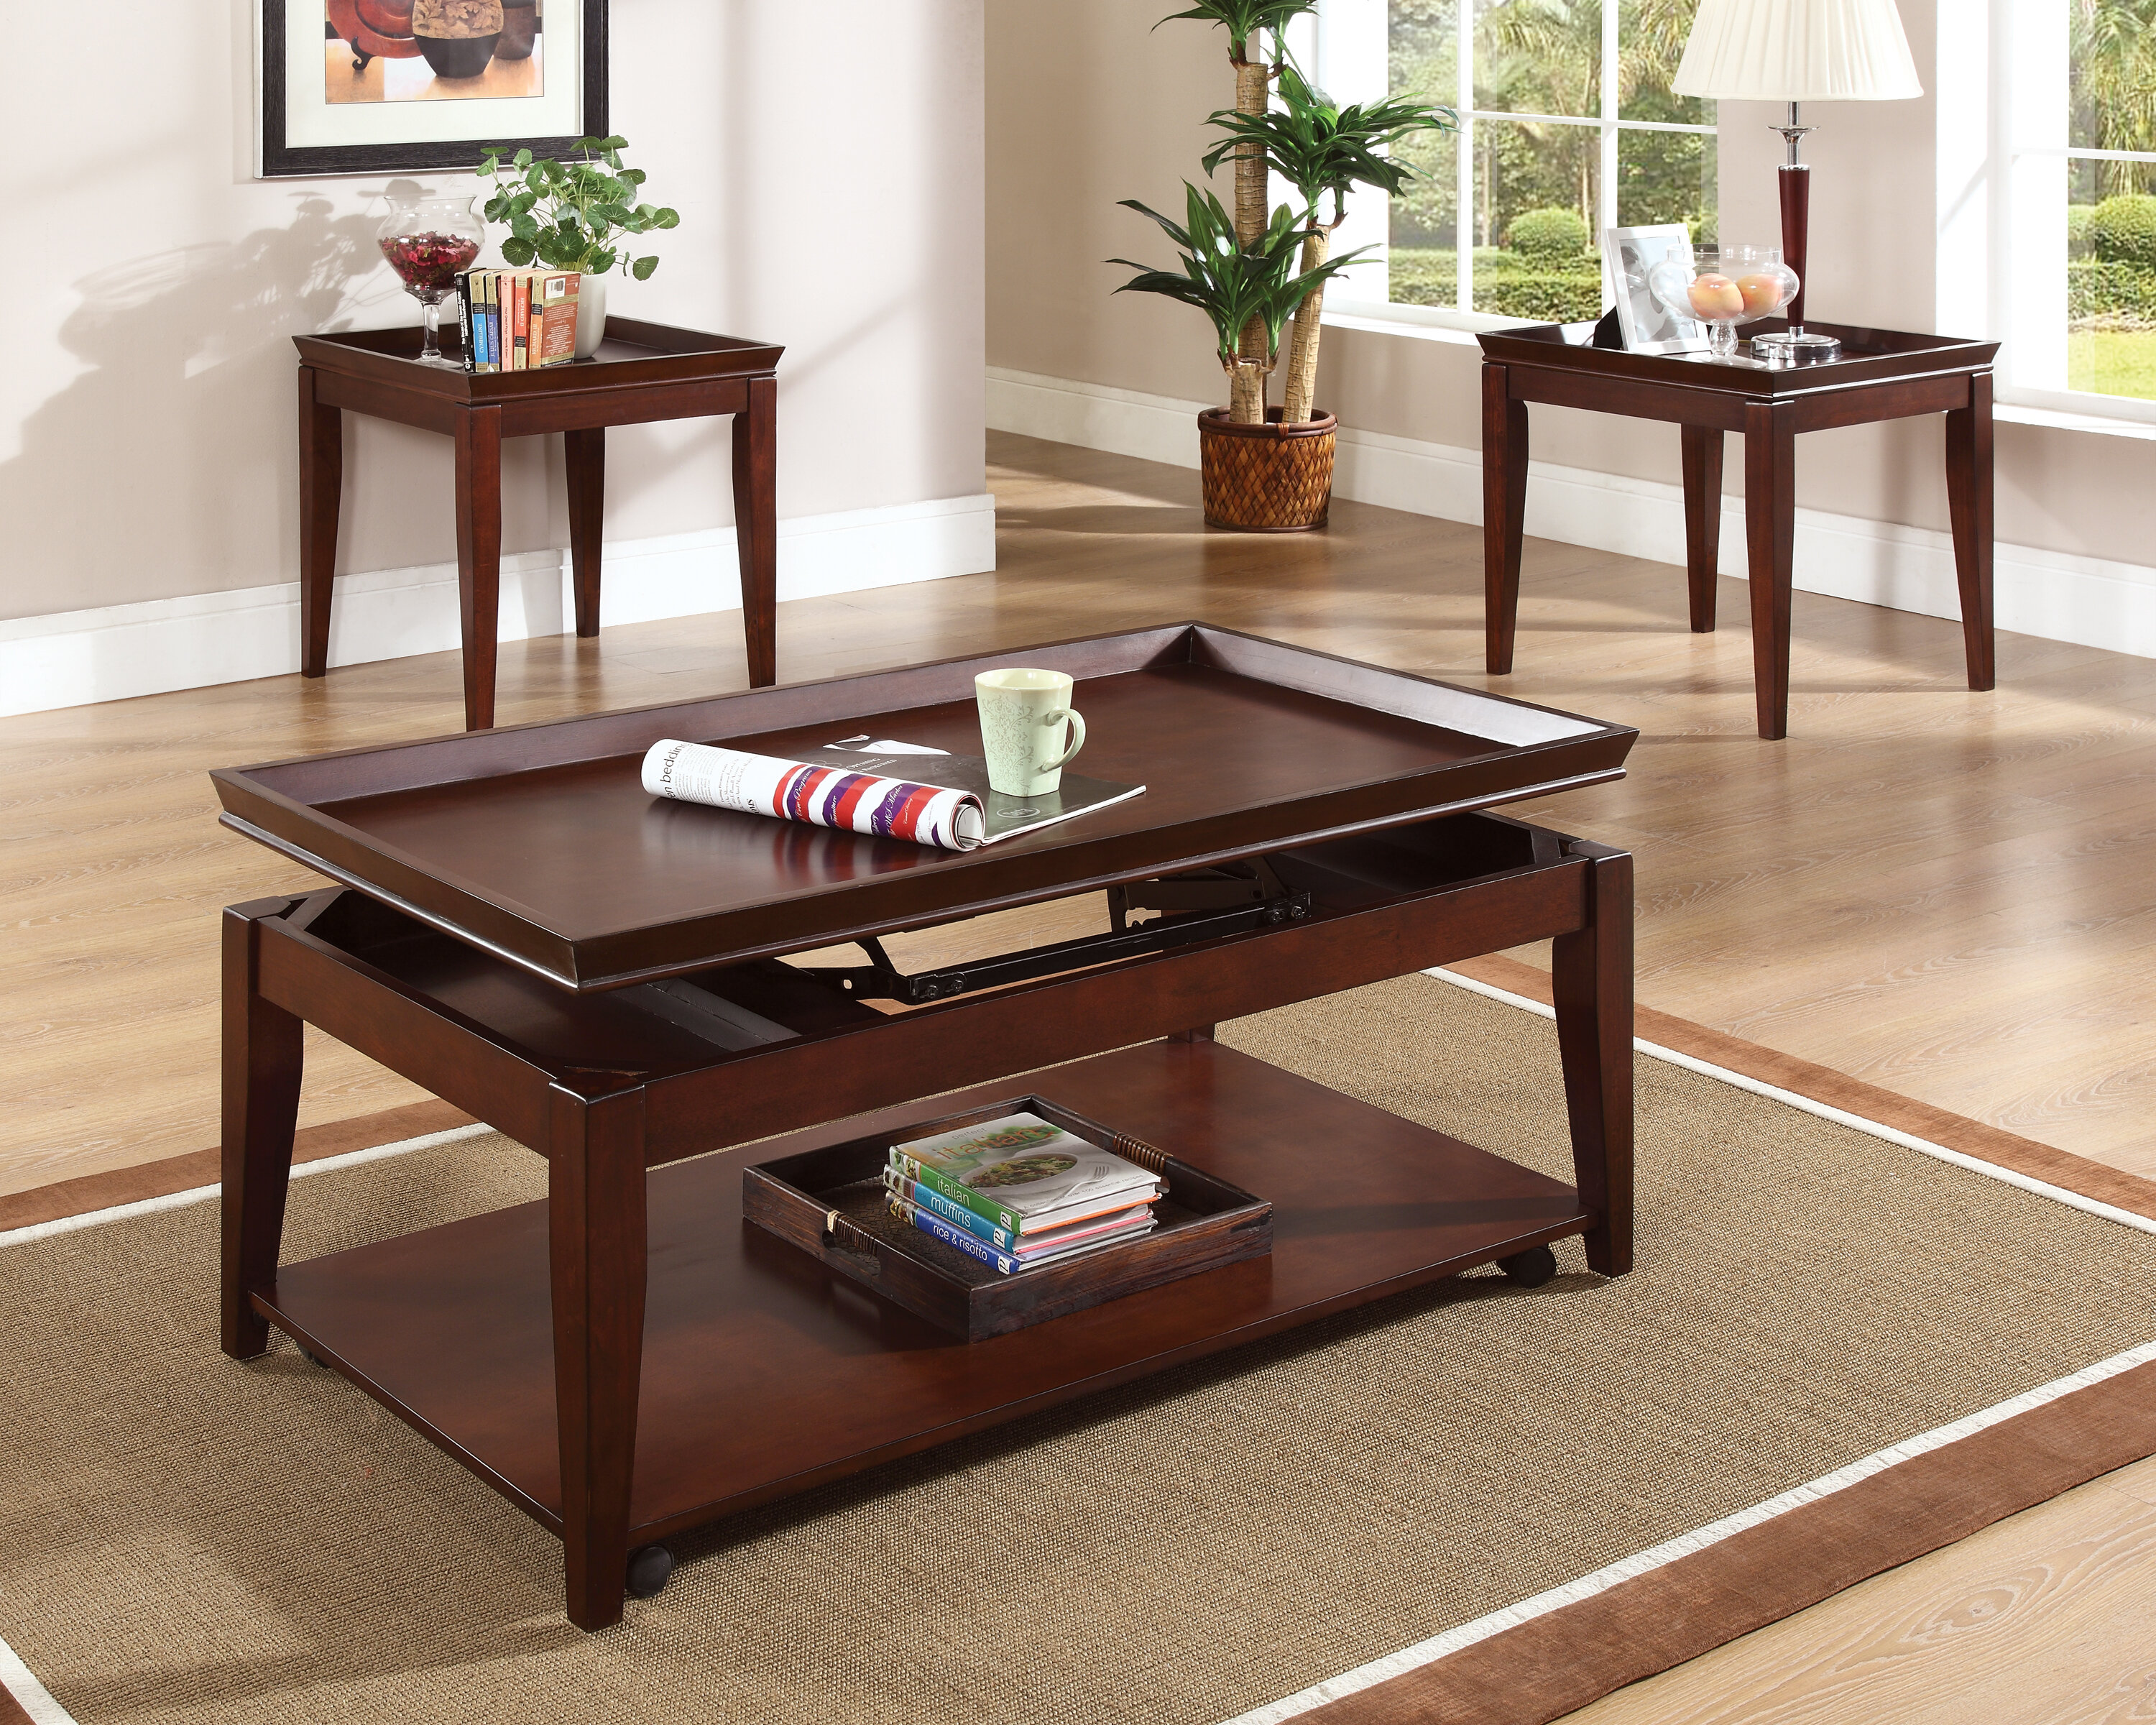 Sofa Table With Chairs living room list of things House Designer